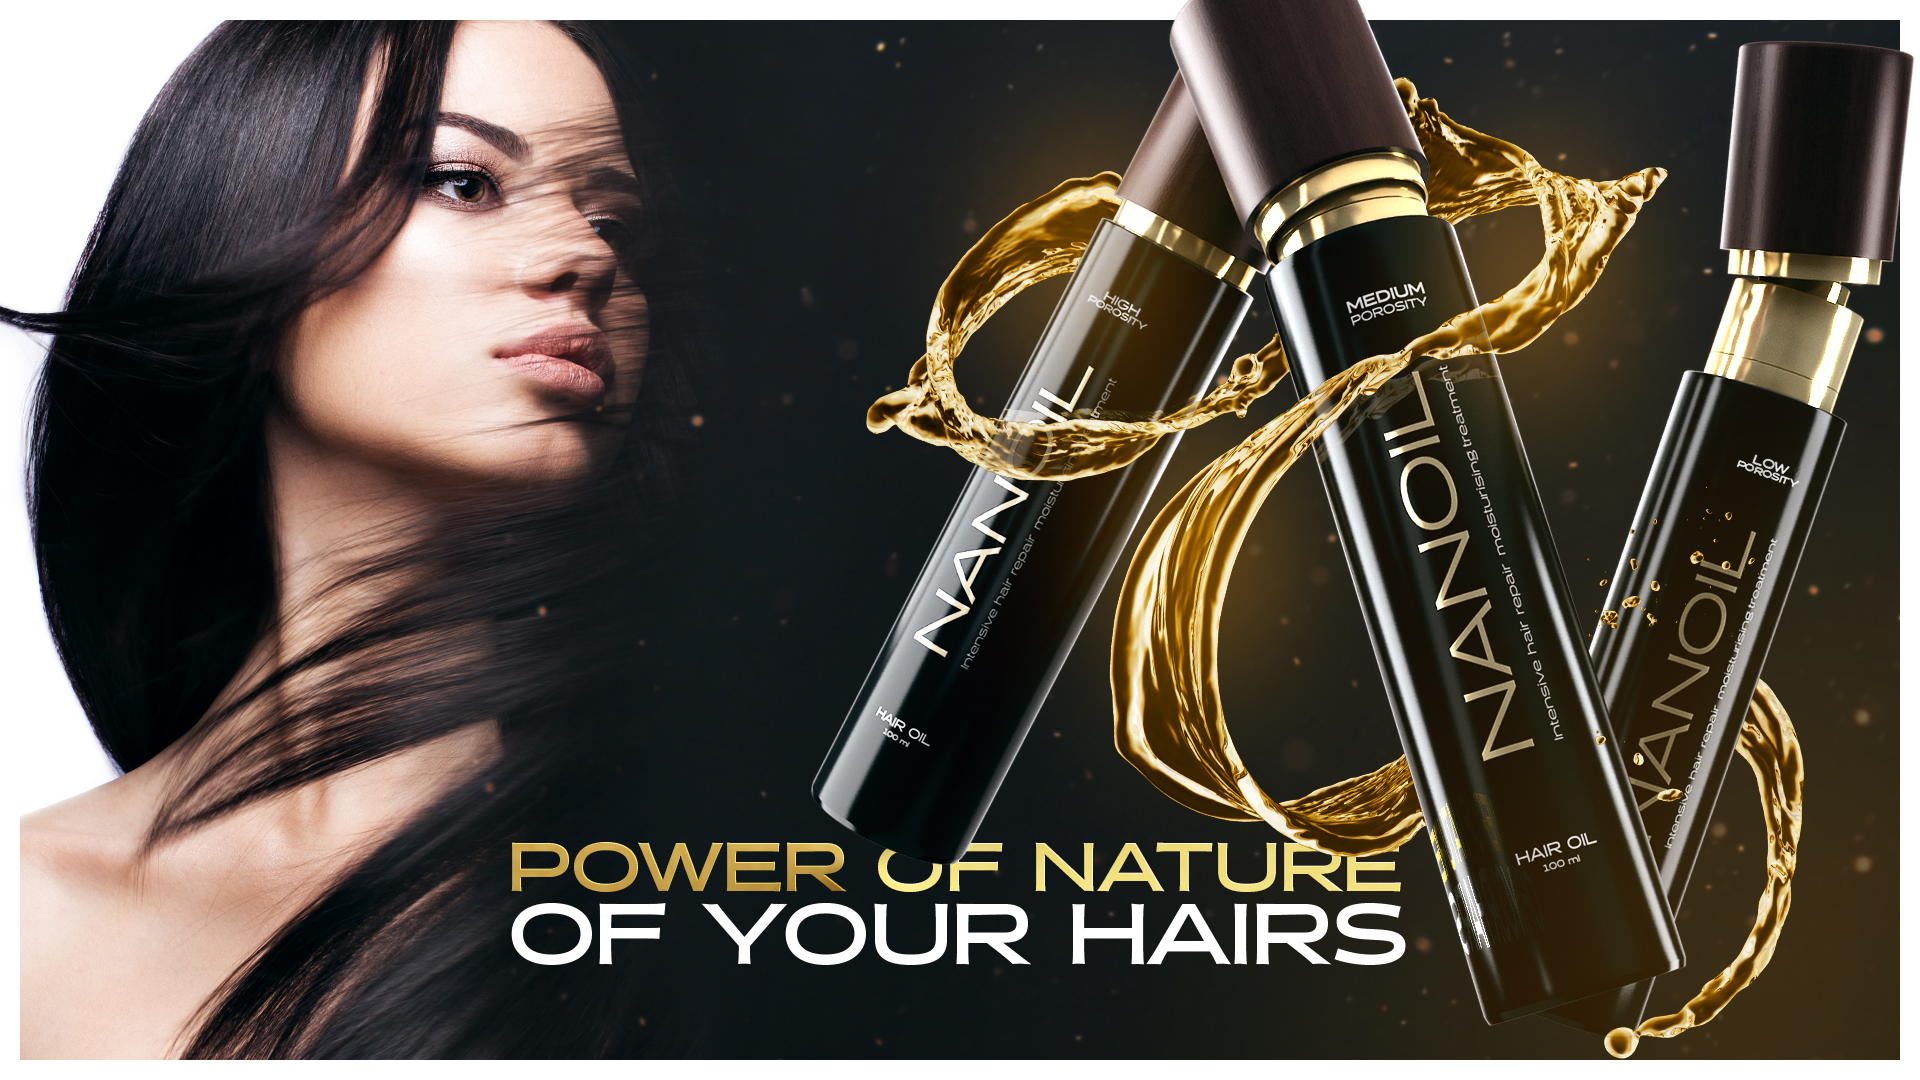 Three times YES for Nanoil hair oil